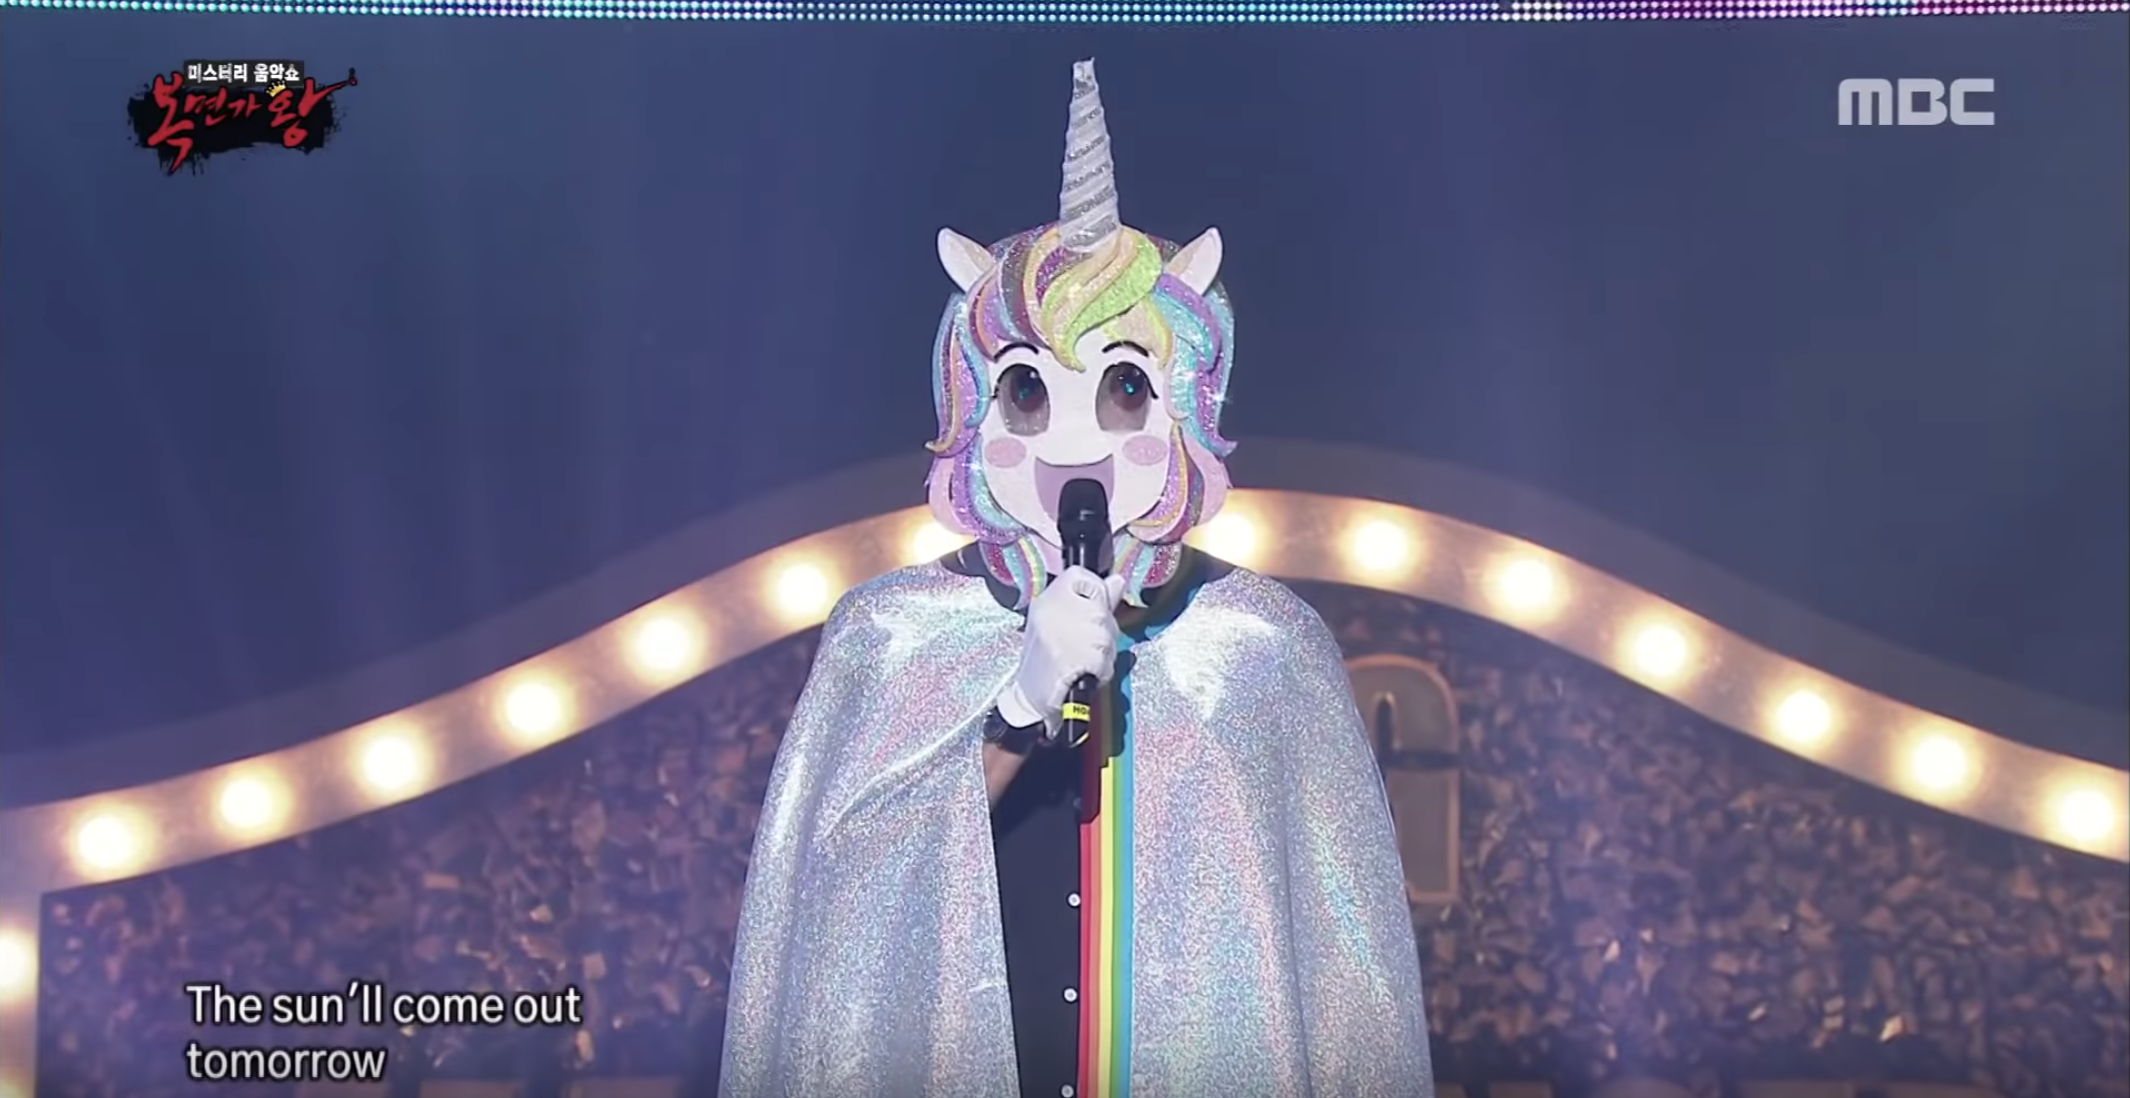 Ryan Reynolds singing in a unicorn costume will make your day